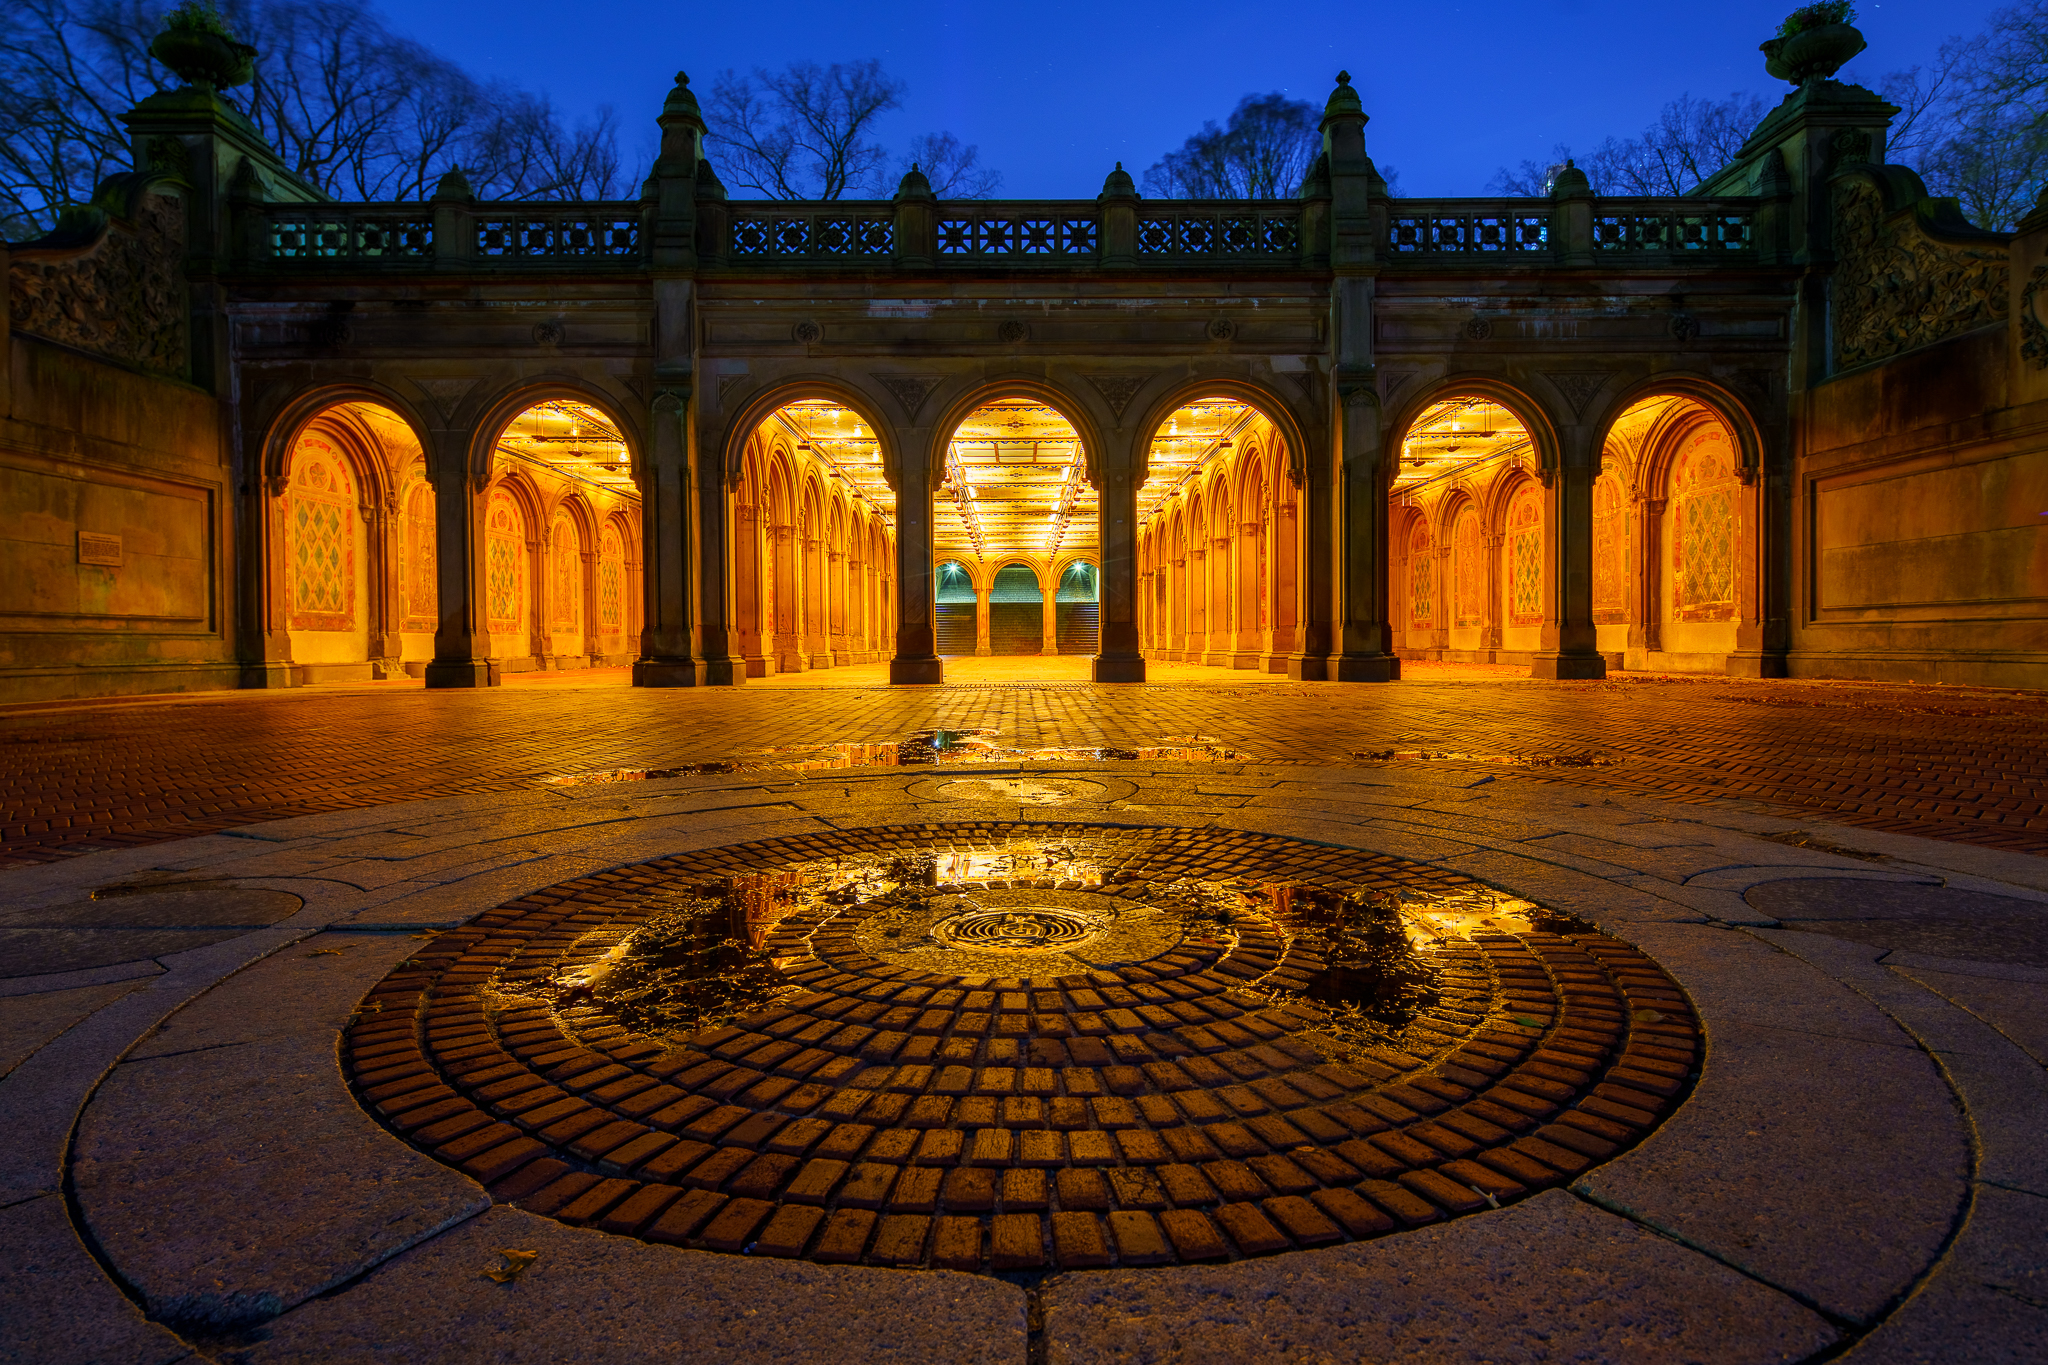 a photo of bethesda terrace at night in central park new york